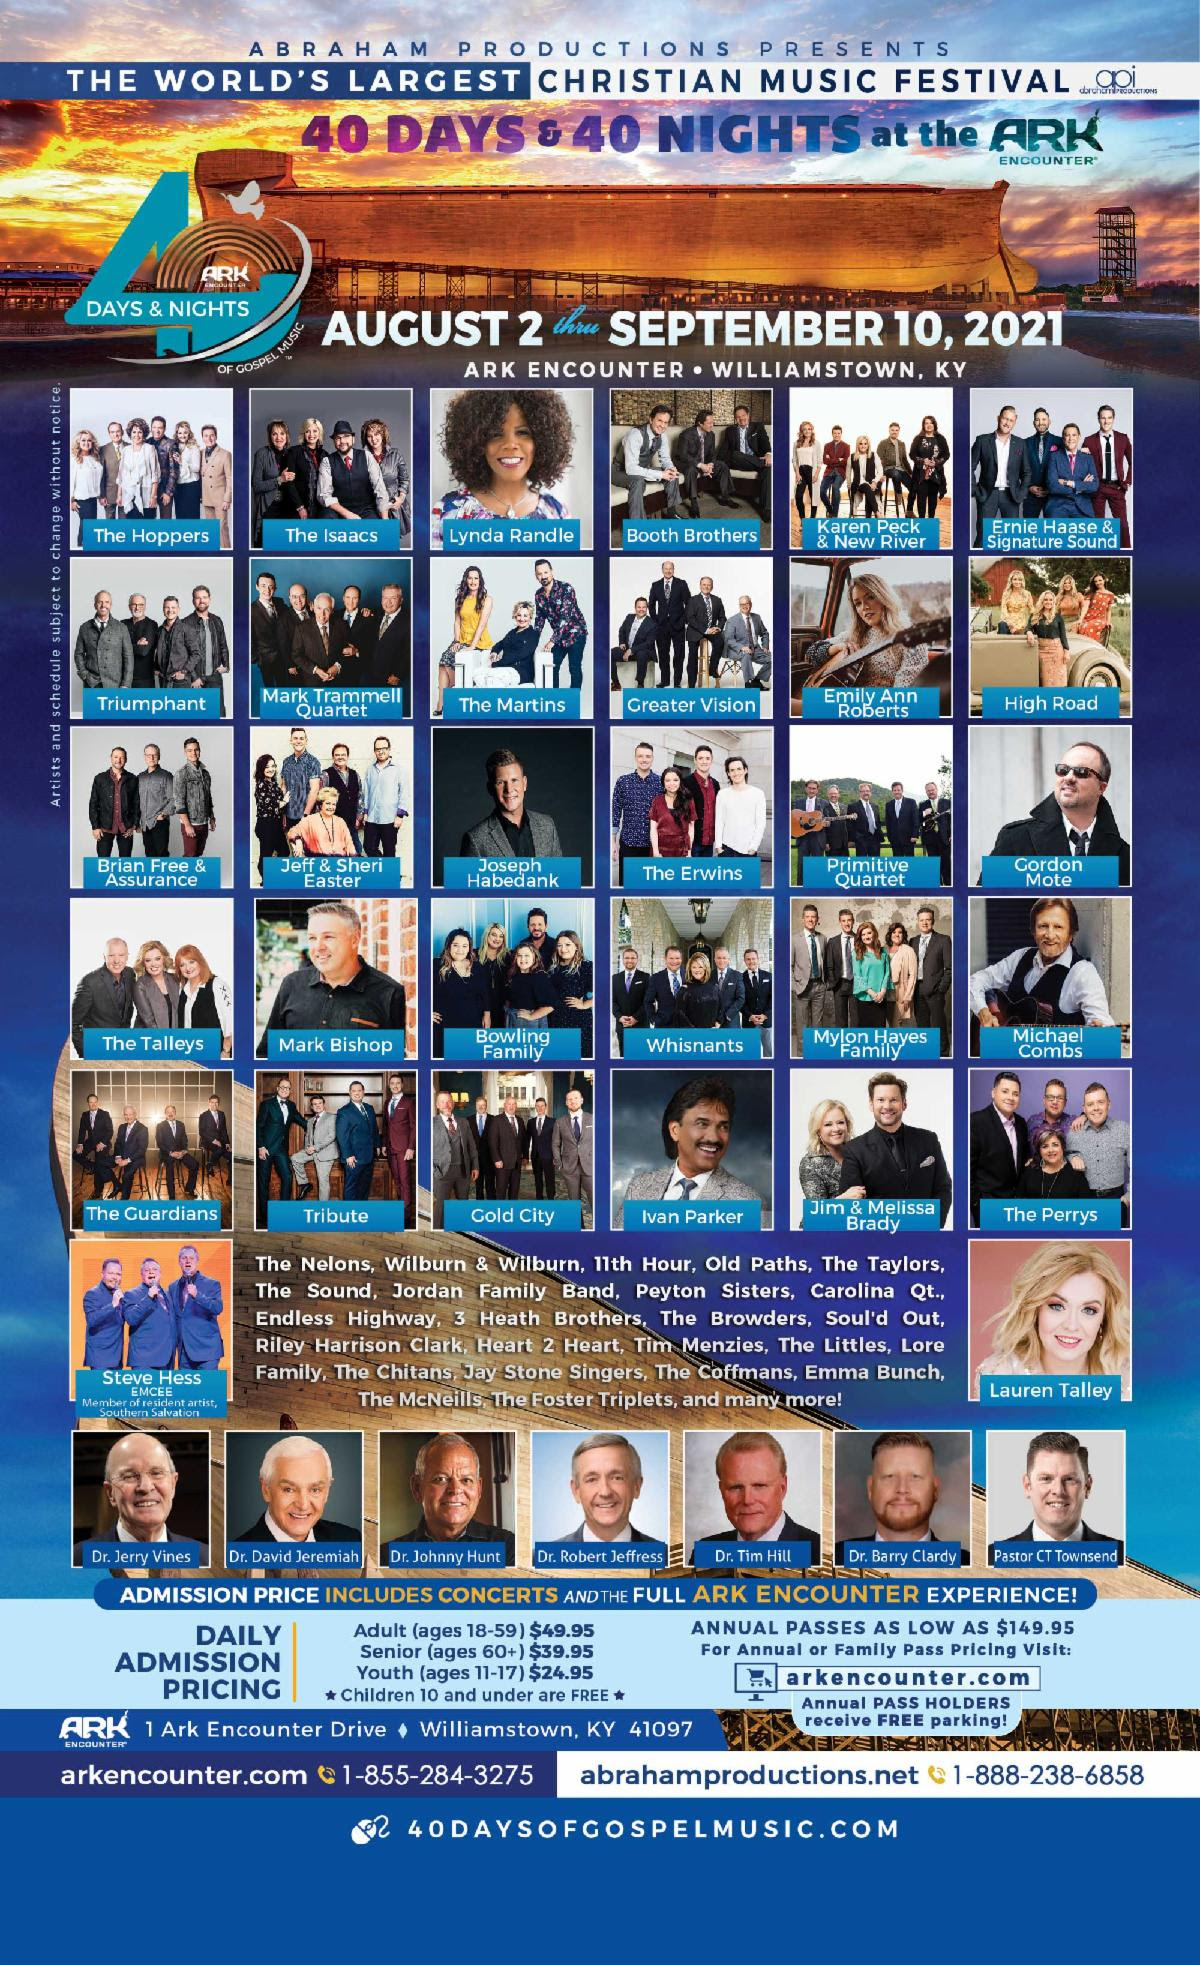 The Ark Encounter and Abraham Productions Announce The World's Largest Christian Music Festival